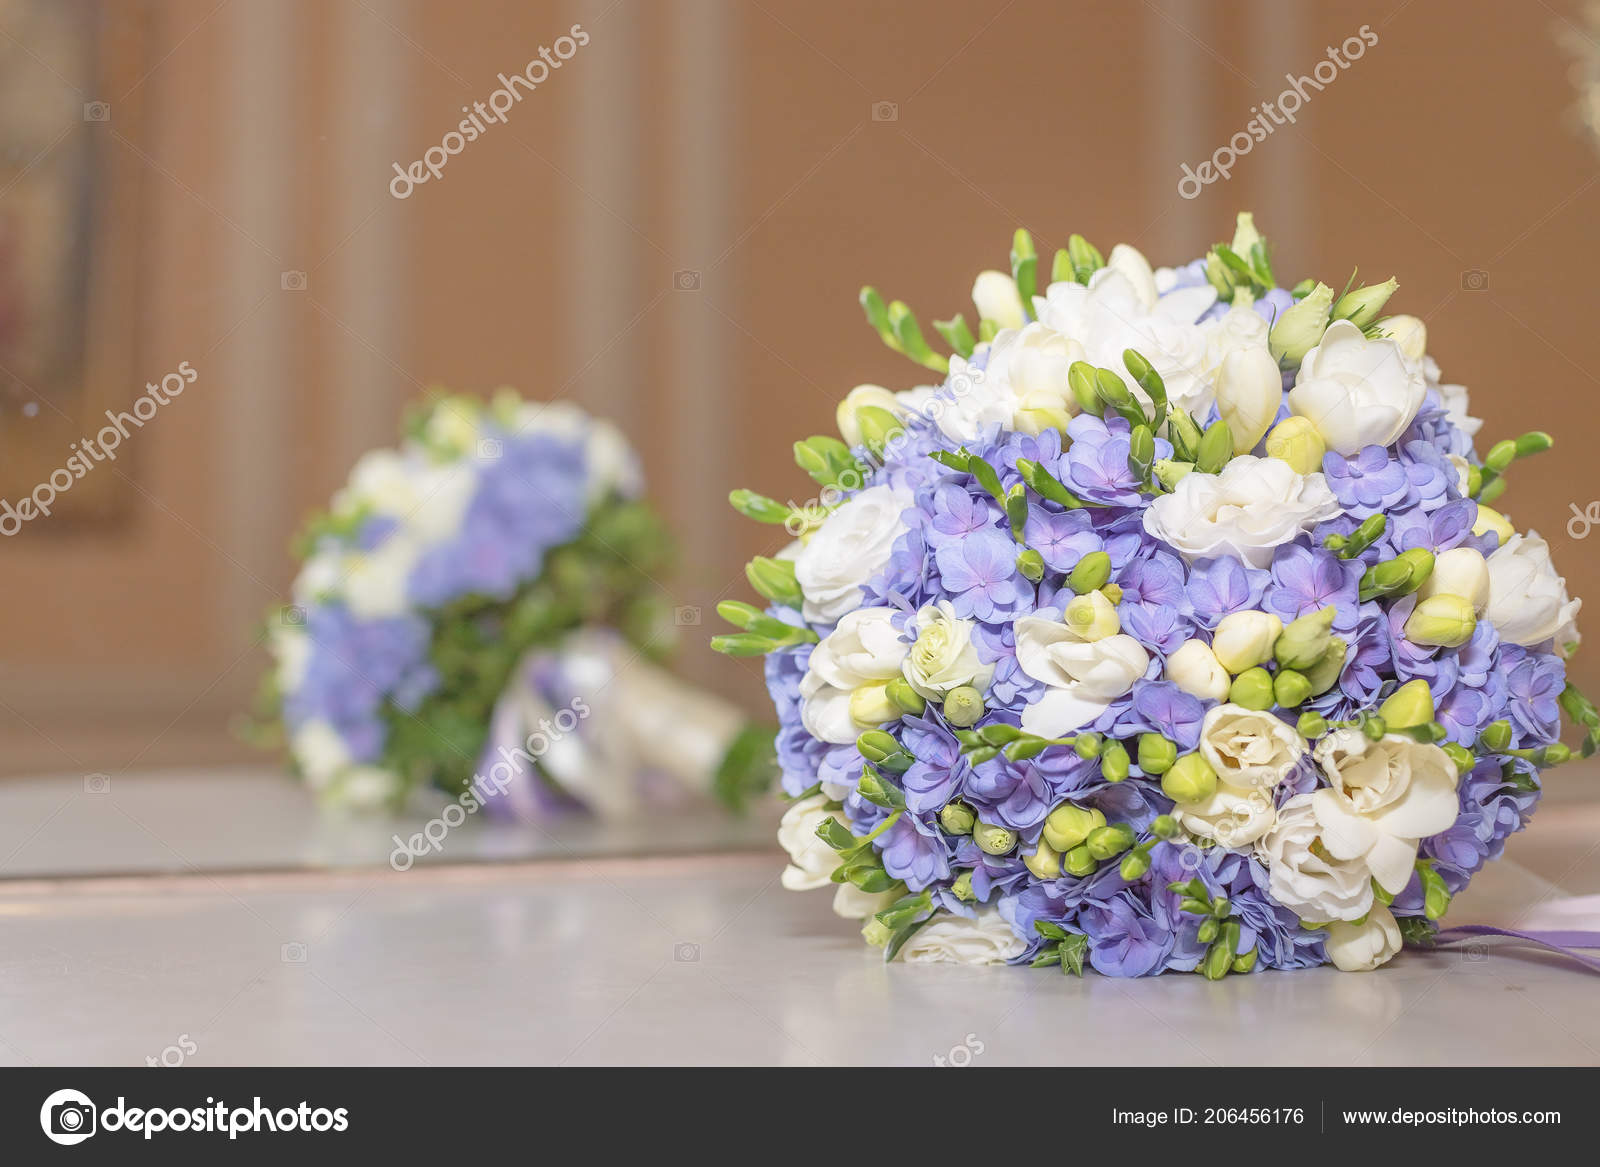 Wedding Bouquet Flowers Bridal Bouquet Beautiful White Blue Bouquet Isolated On Marble Table Against Mirrow Colorful Flowers White And Blue Freesia And Hydrangea Copy Space Stock Photo C Yulia25 List Ru 206456176